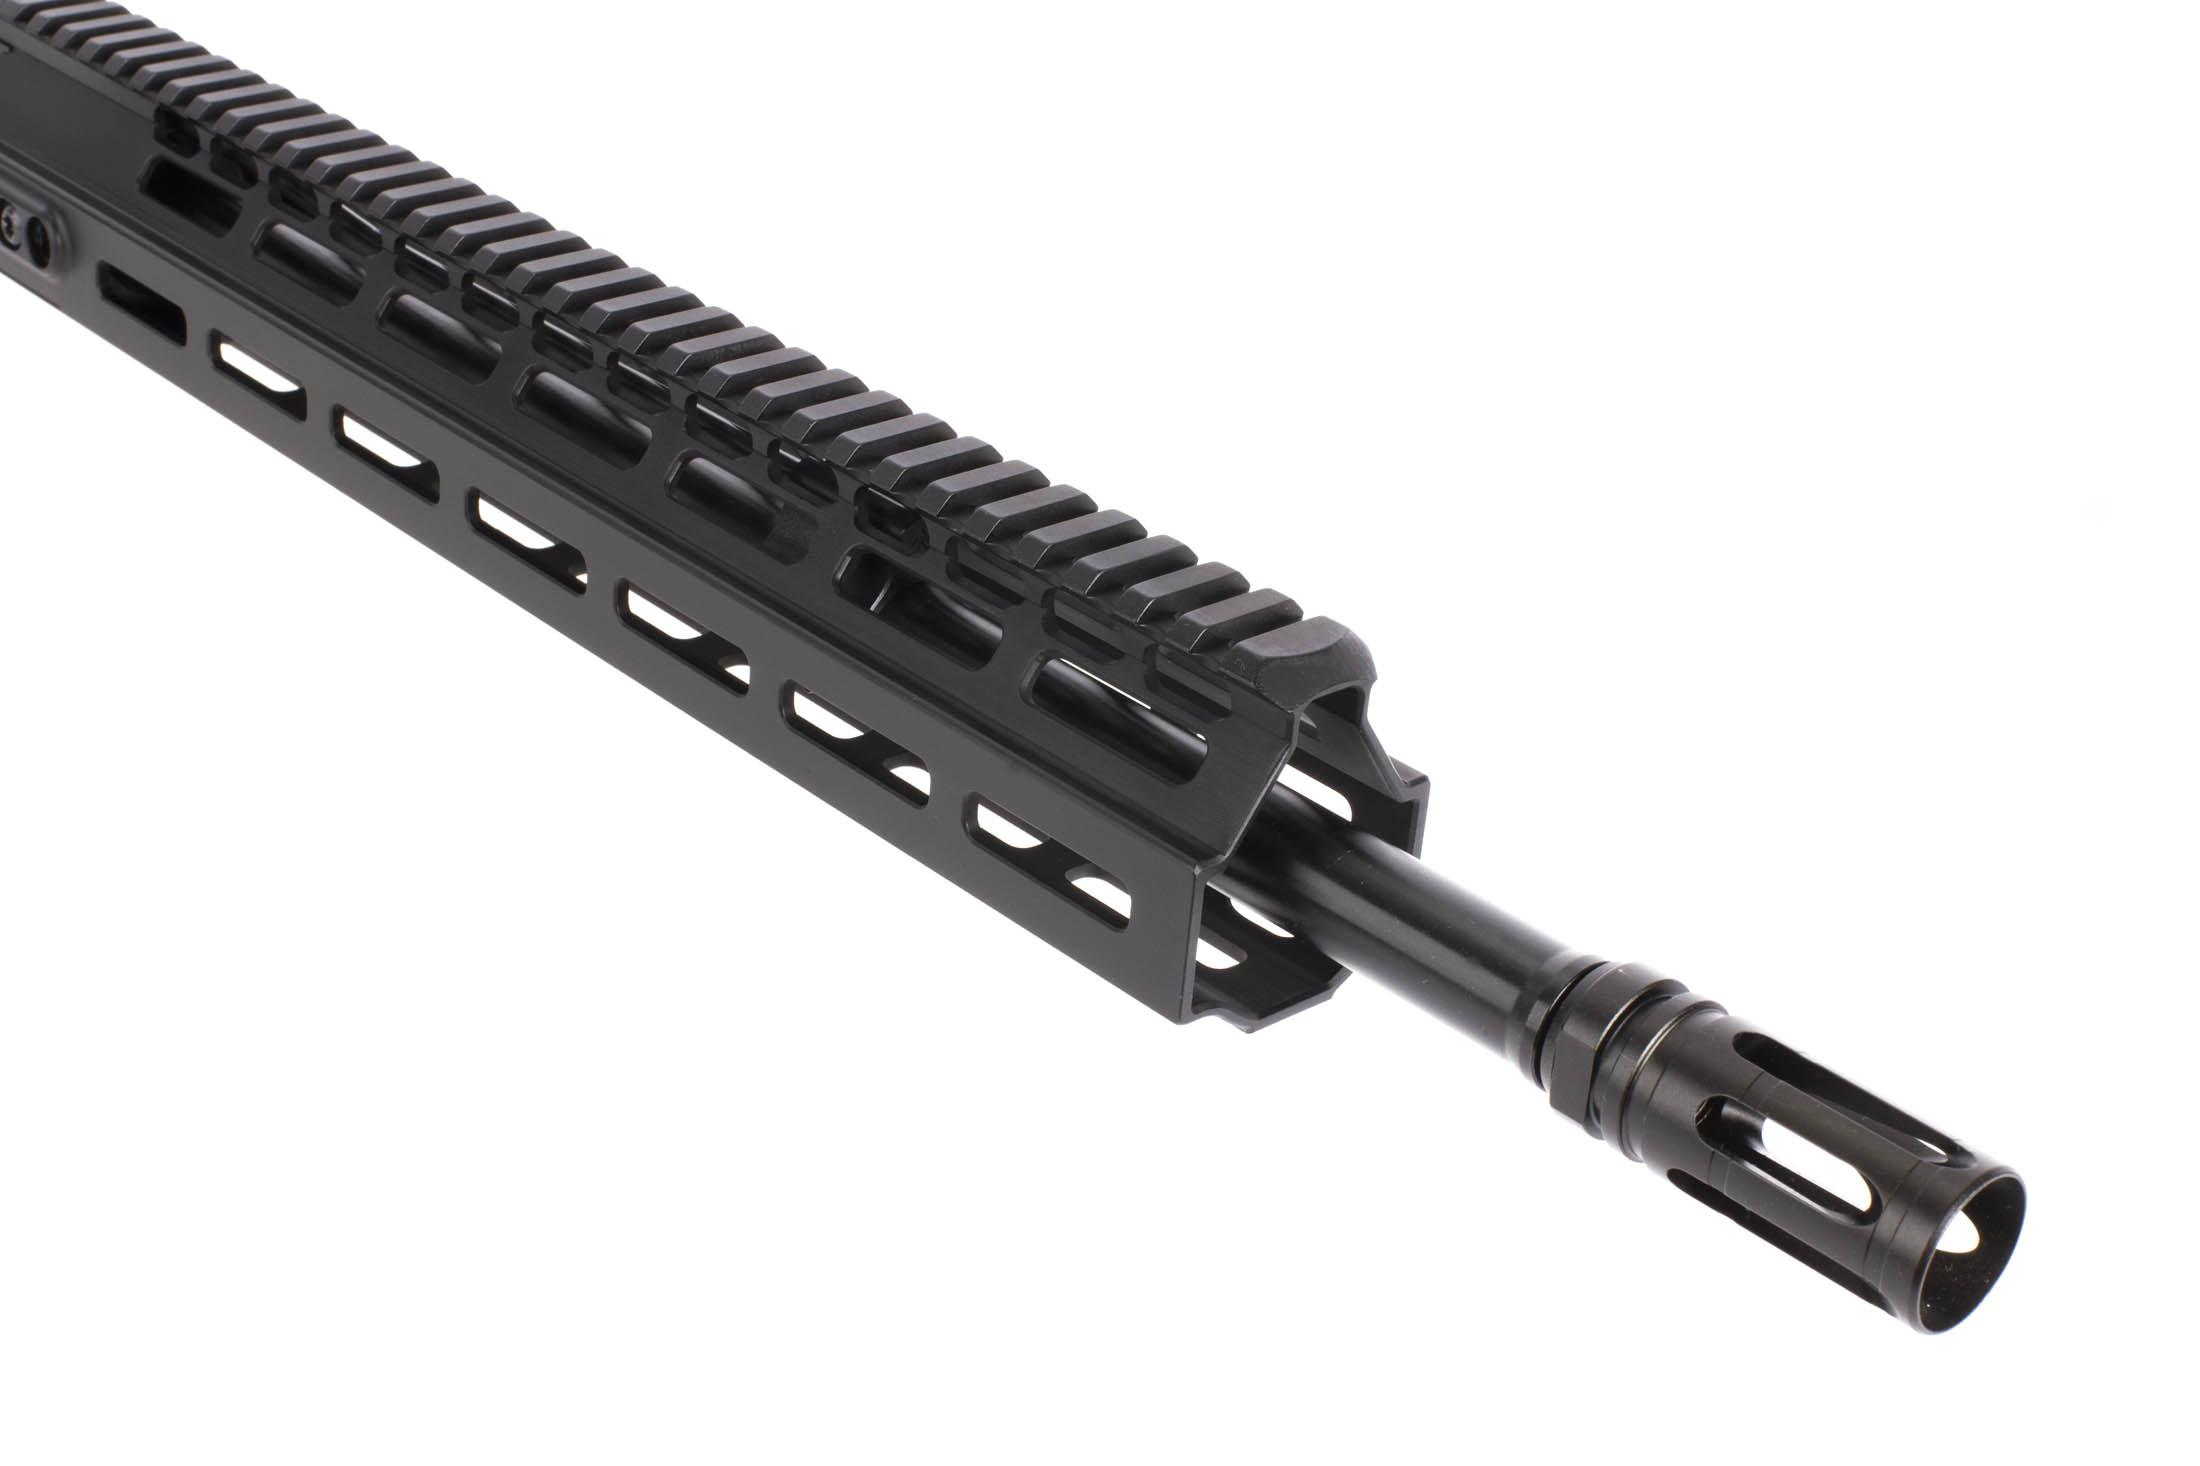 The Kinetic Development Group ar15 upper receiver has a 16 inch 5.56 NATO Mid-Length Barrel